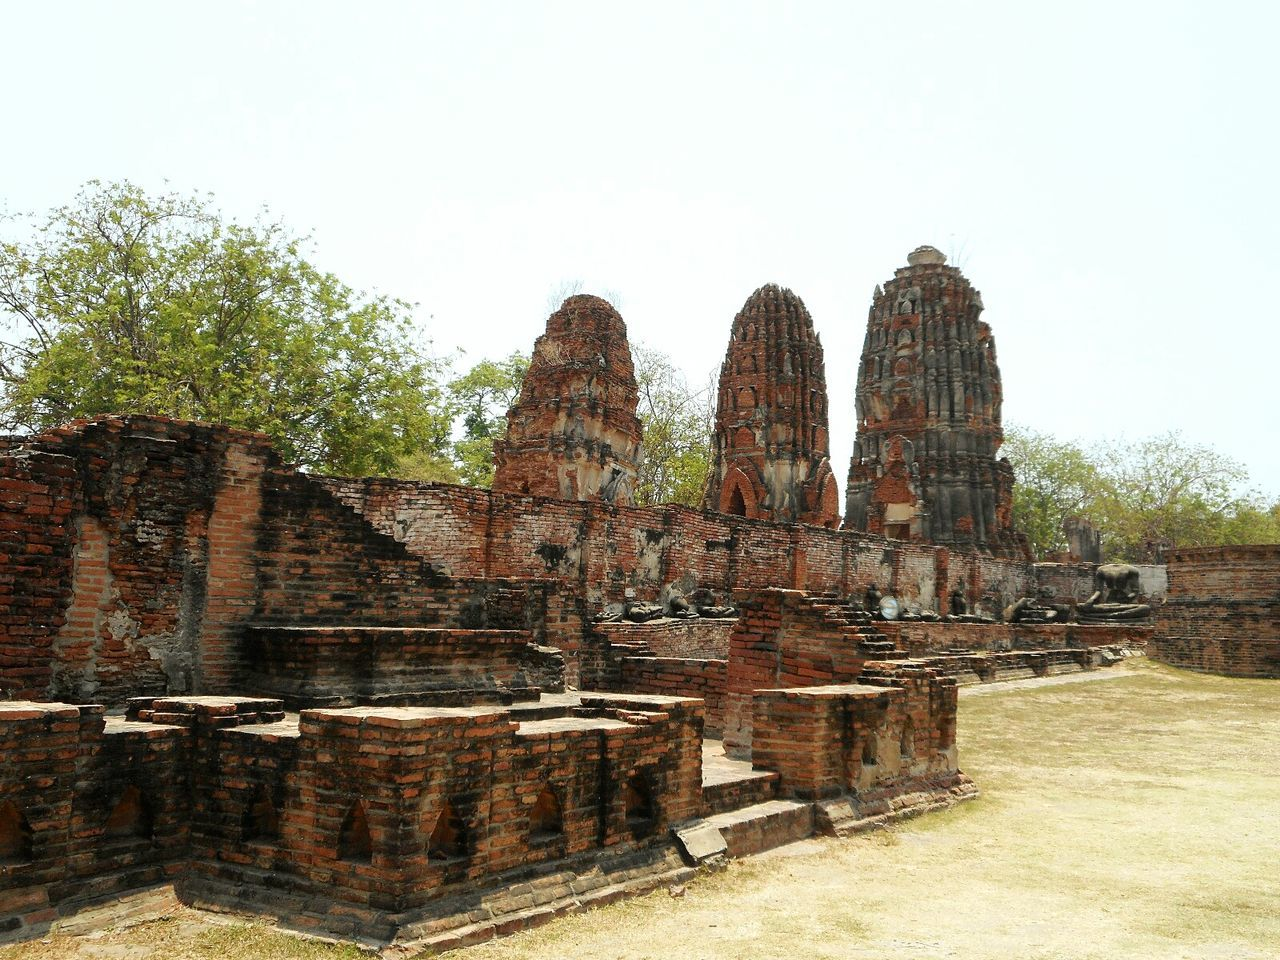 History Old Ruin Ancient Travel Destinations Place Of Worship Travel Ancient Civilization Built Structure Buddhist Travel Photography Travel Thai Budismo Buddhist Temple Architecture Religion Pagoda Ayutthaya Historic Park Ayutthaya Tailandia. Spirituality Ancient Buda Buddhism Ayyuthaya